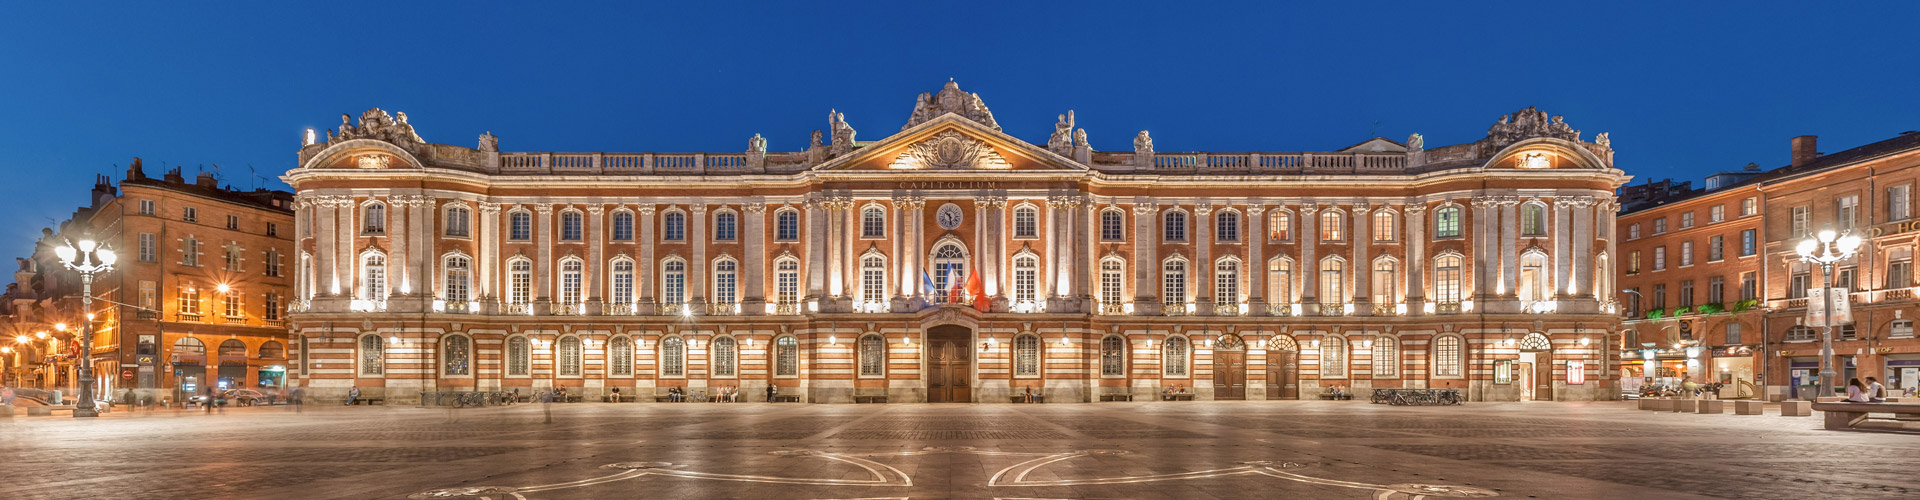 toulouse_capitole_night_wikimedia_commons-photo-benh-lieu-song